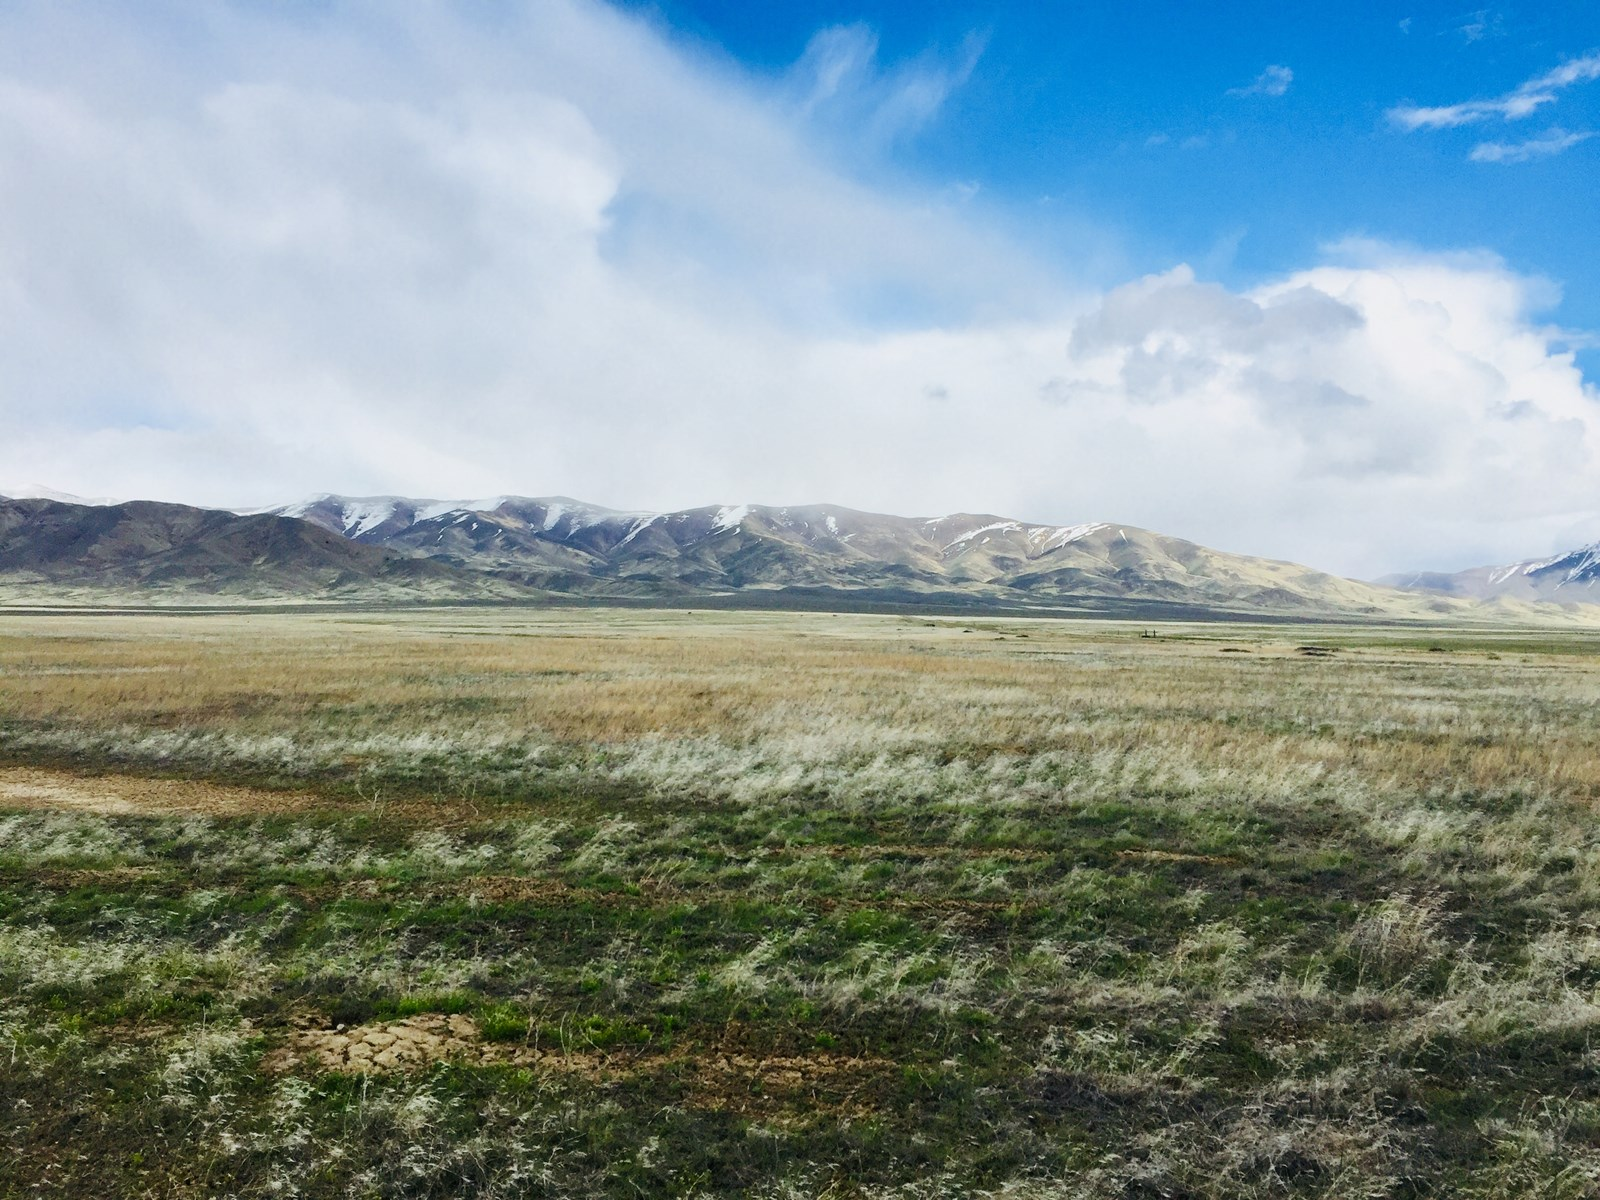 Land for sale in Pershing county close to Winnemucca